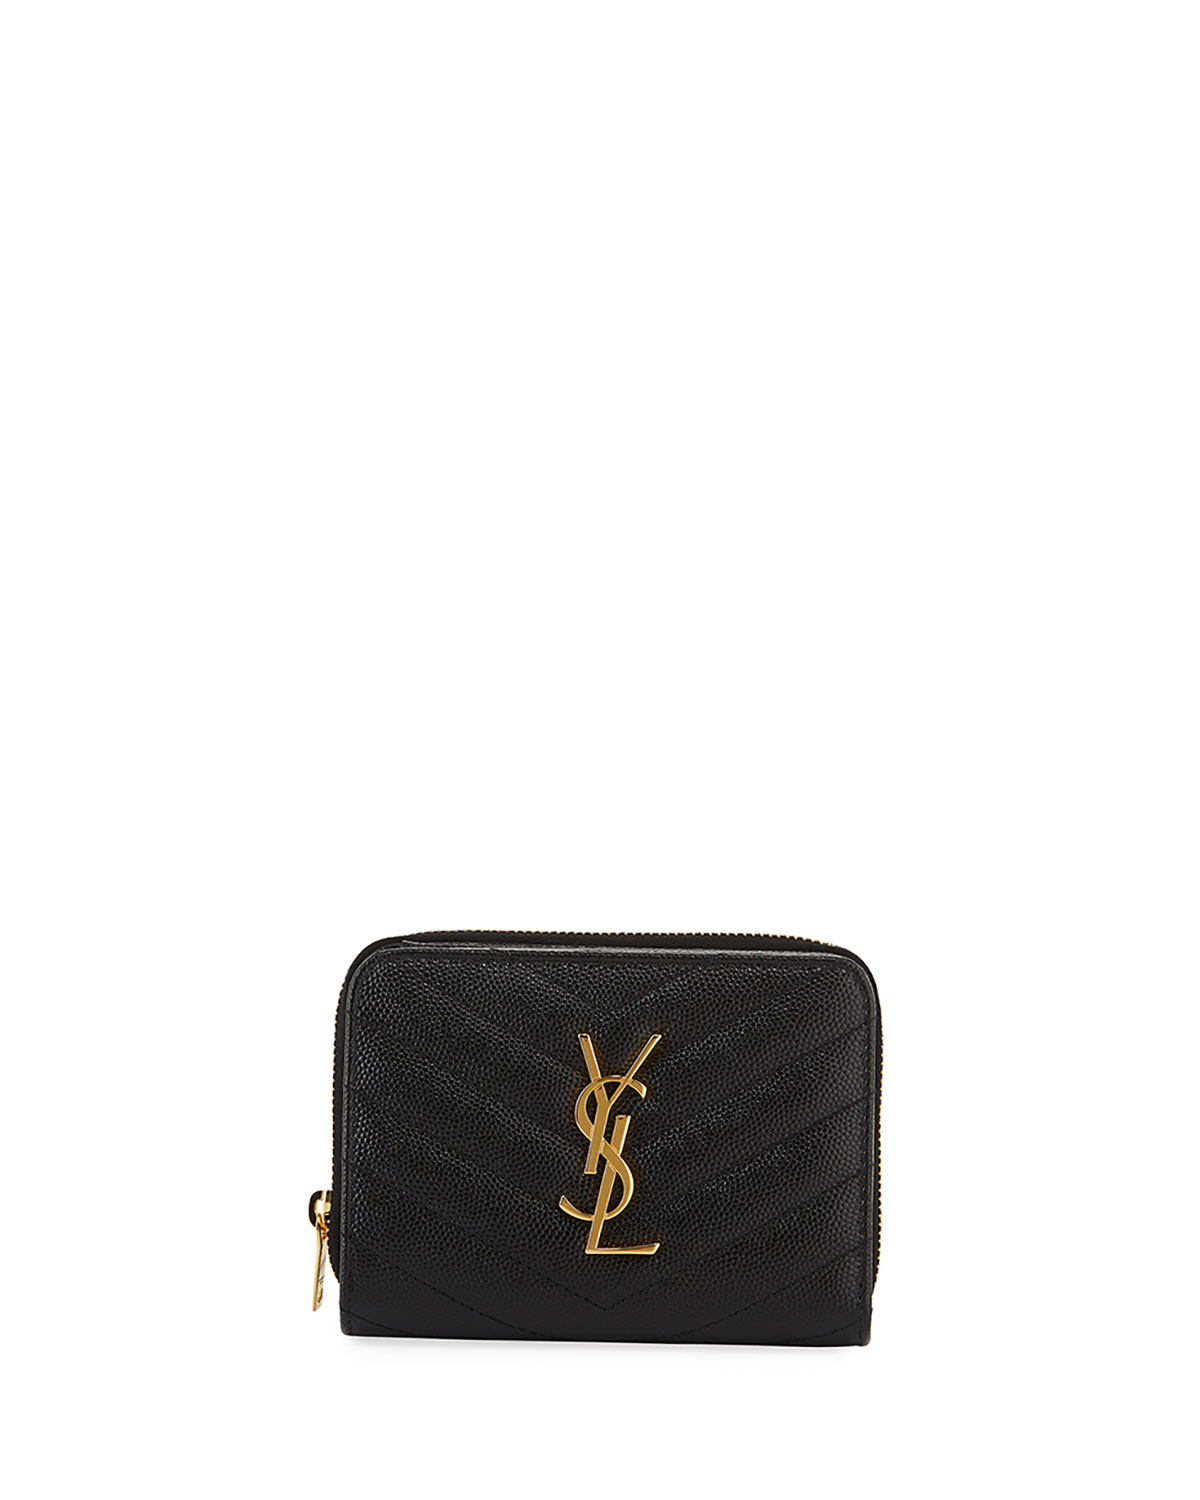 2793d290106d Saint Laurent Mini Monogram YSL Textured Zip Wallet